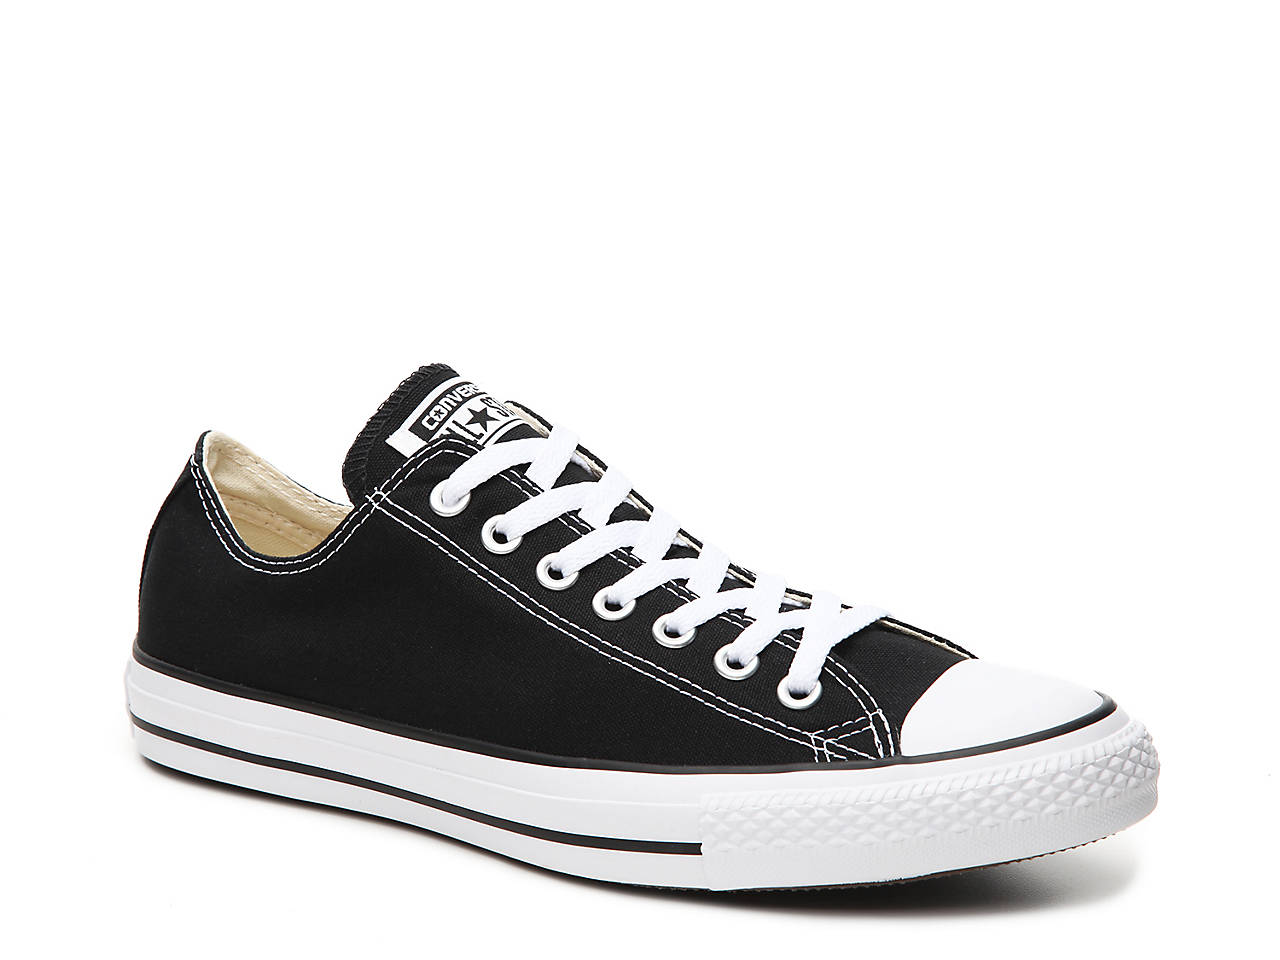 9eecaede342b Converse Chuck Taylor All Star Sneaker - Men s Men s Shoes